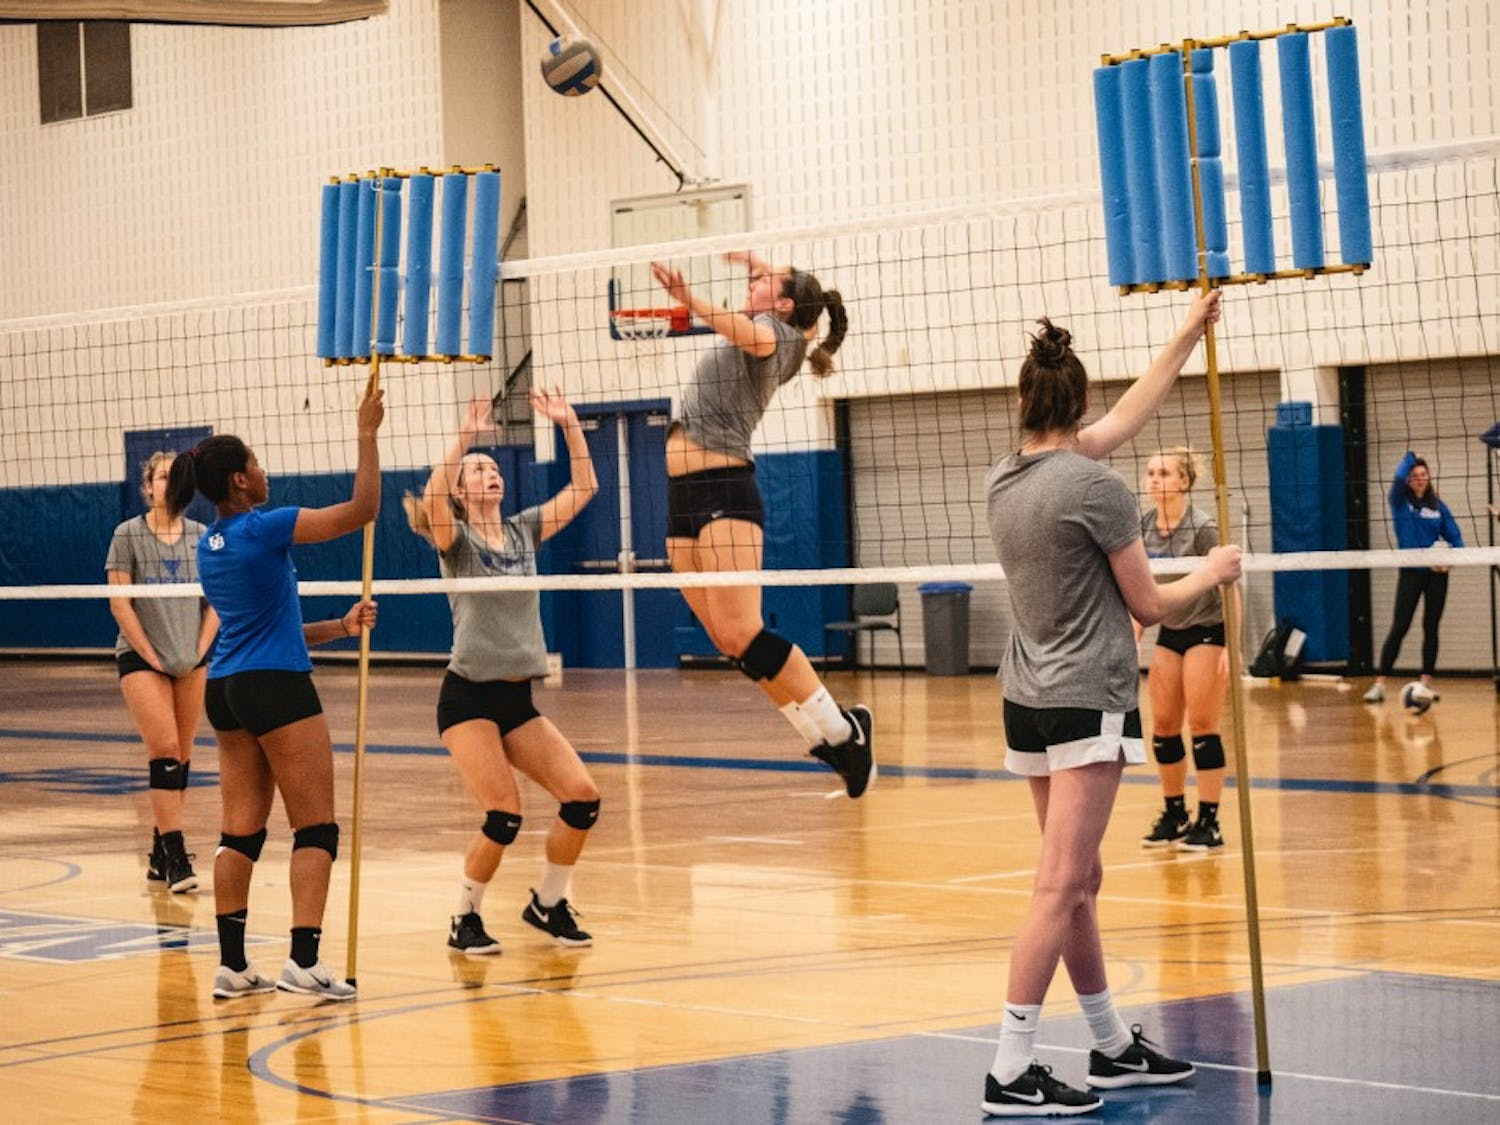 A Bull gets ready to spike the ball at volleyball practice.